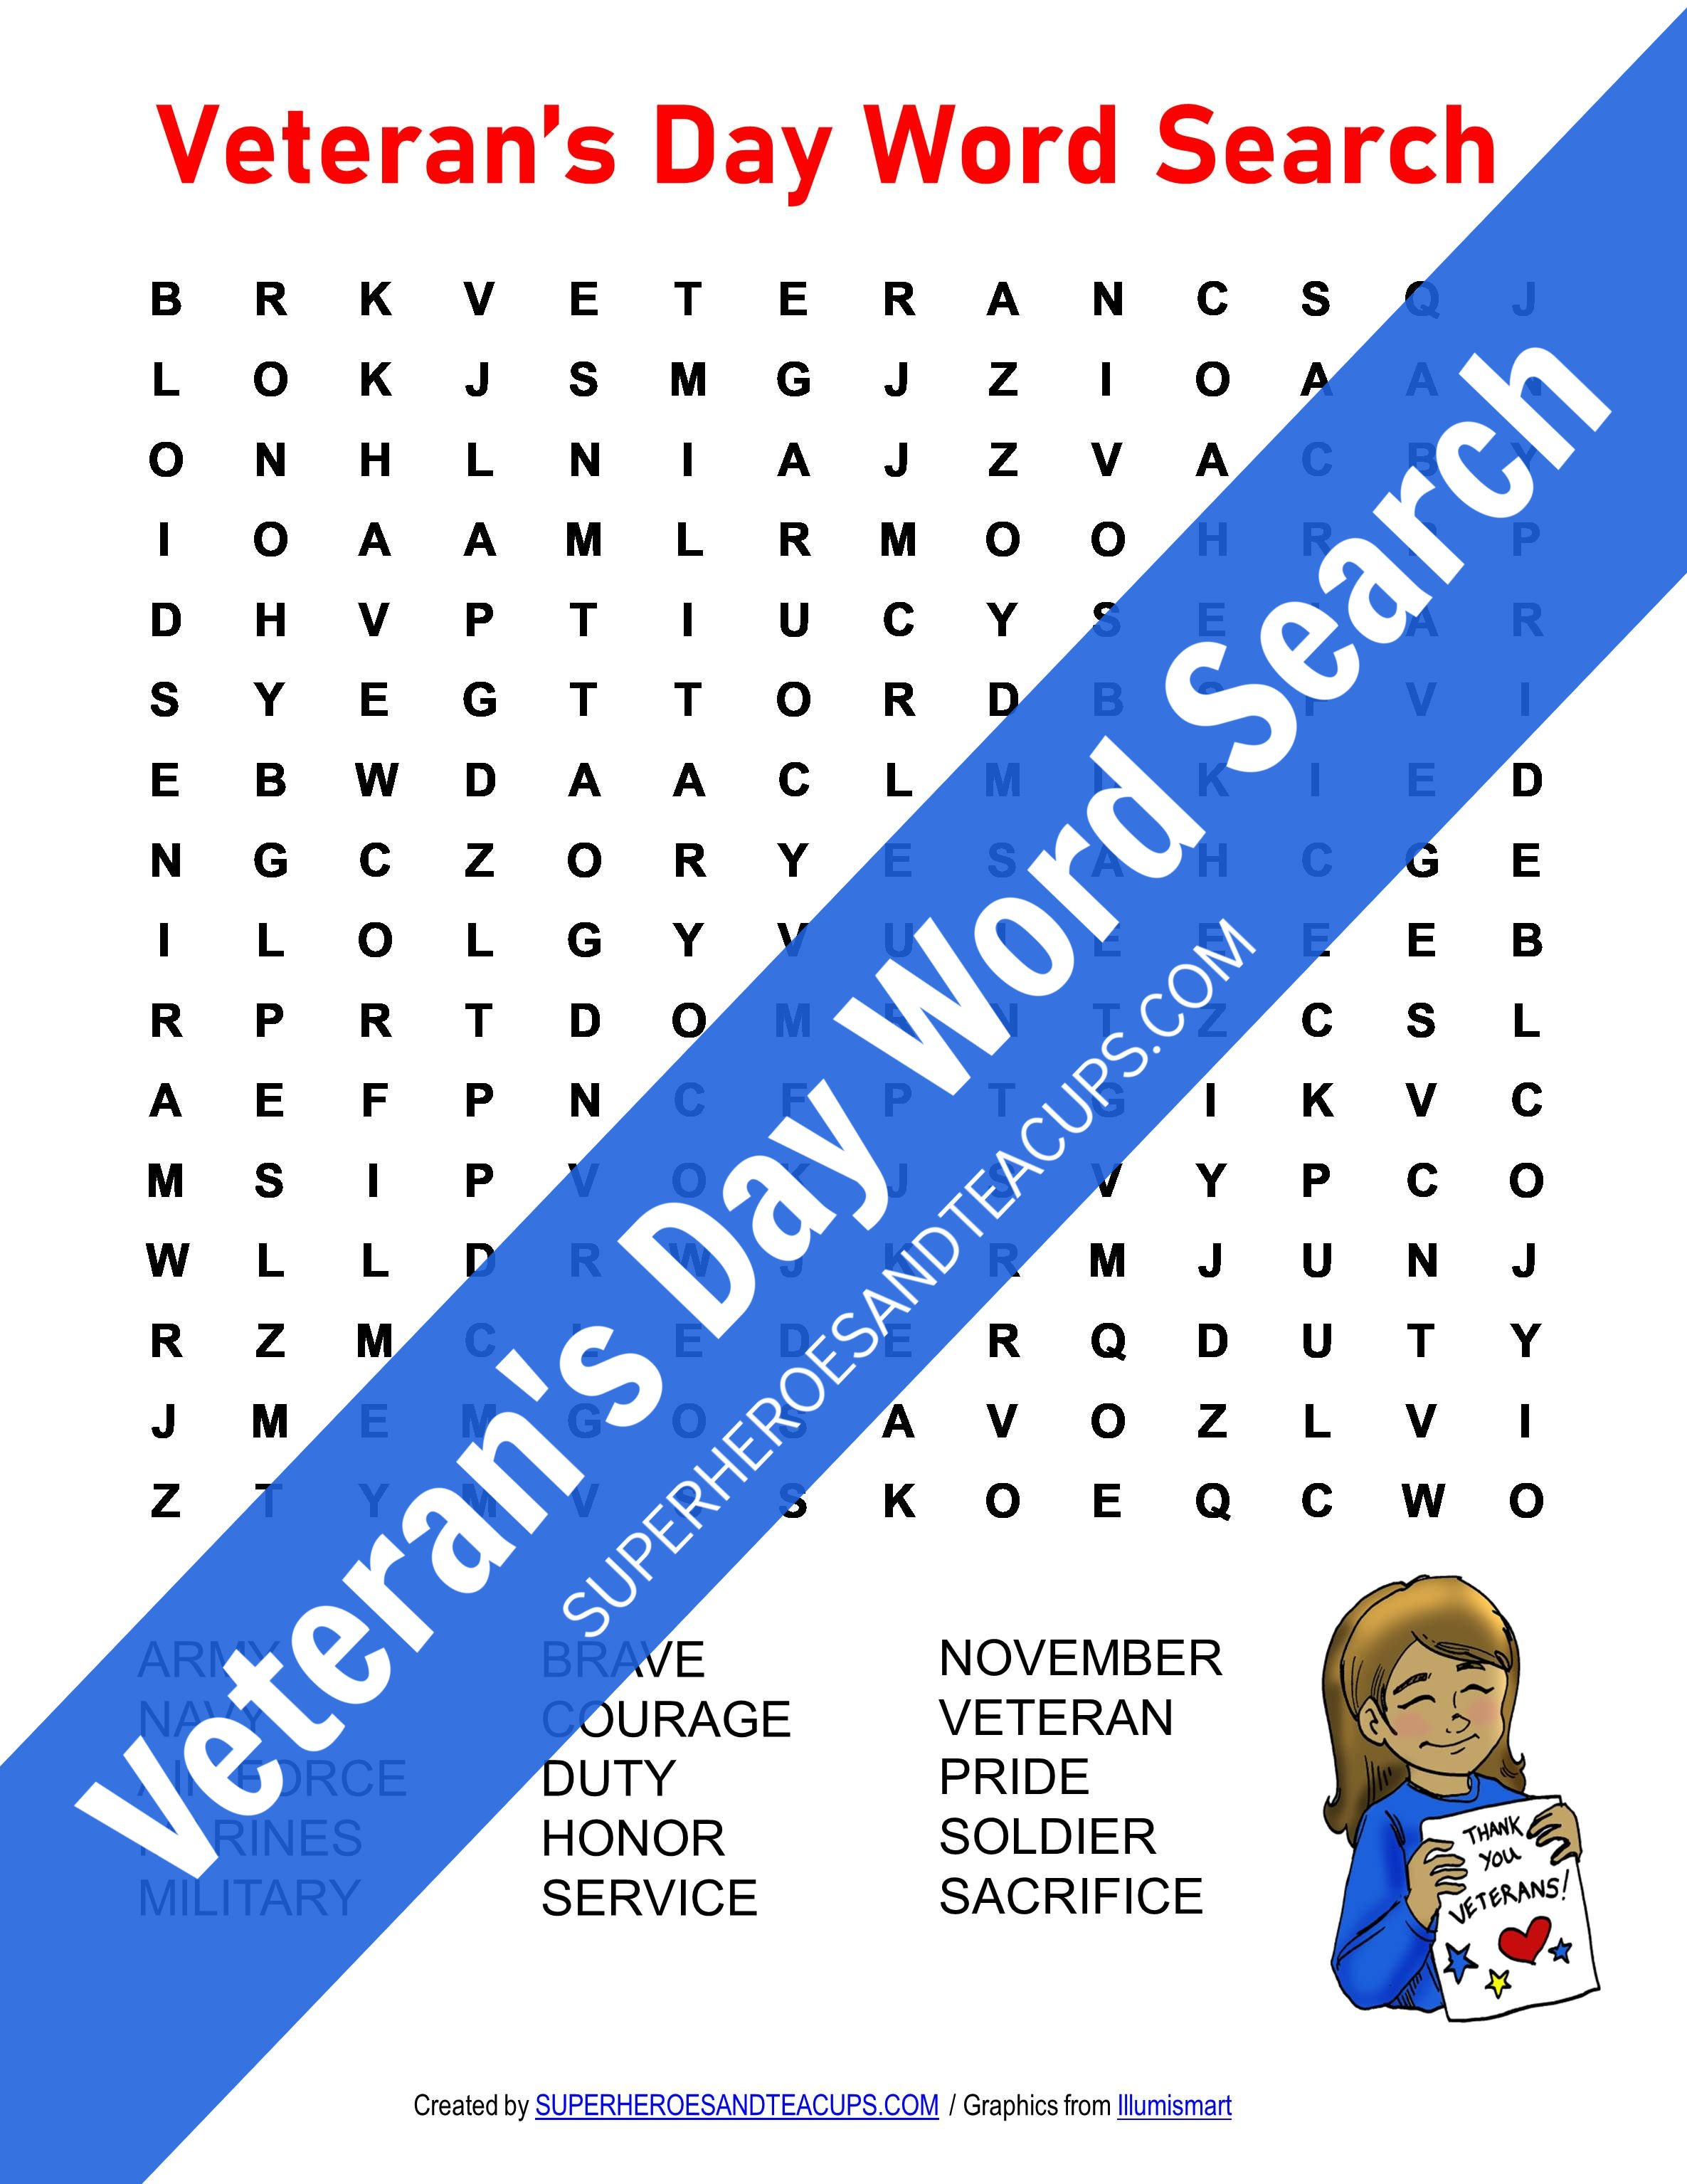 Veteran's Day Word Search Free Printable